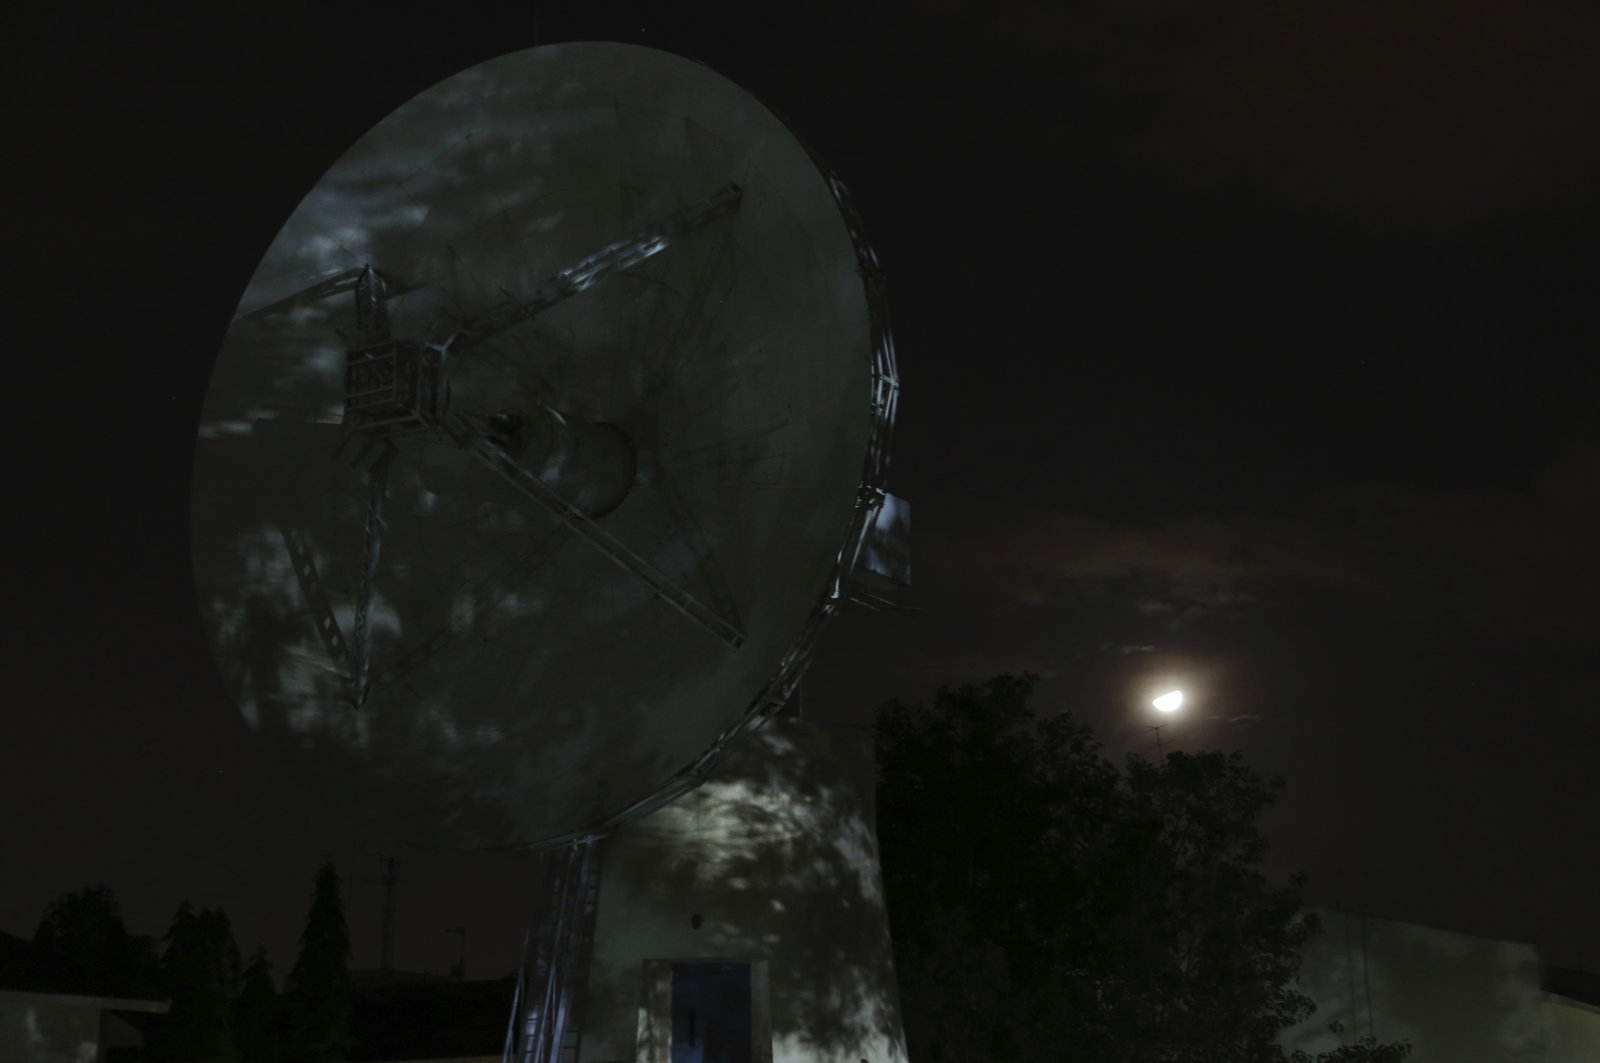 The moon is seen behind a tracking antenna at Indian Space Research Organization's Telemetry, Tracking and Command Network facility in Bangalore, India, late Friday, Sept. 6, 2019. India's space agency said it lost touch Saturday with its Vikram lunar lander as it aimed to land on the south pole of the moon and deploy a rover to search for signs of water. (AP Photo/Aijaz Rahi)